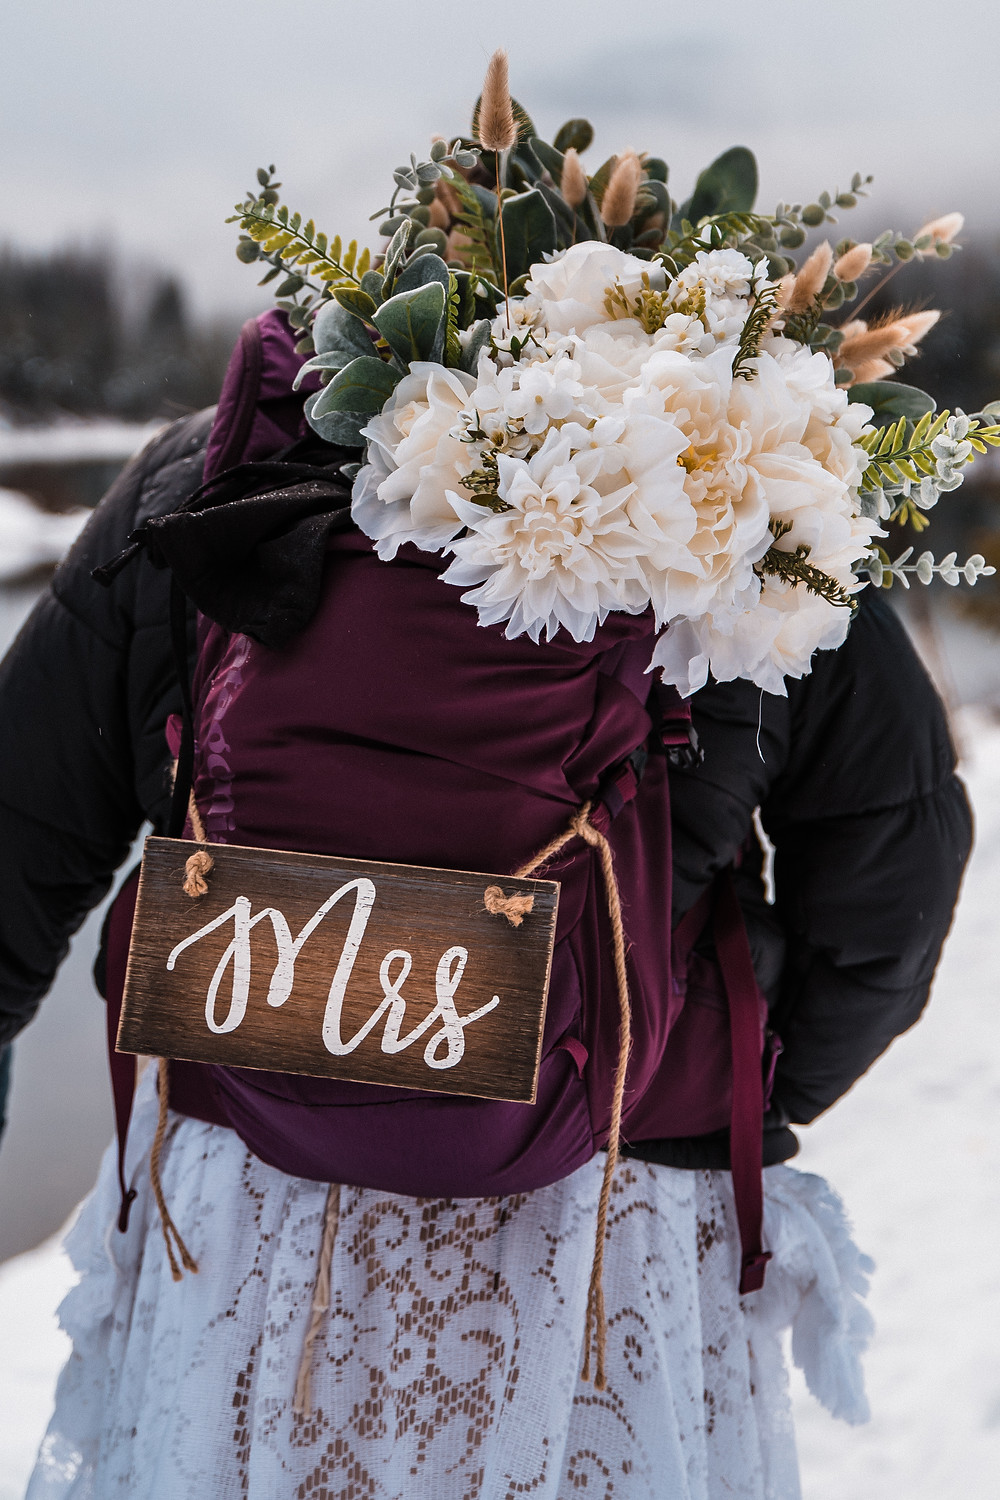 A bouquet is placed in a bride's hiking day pack as she prepares to begin hiking with her future husband on their adventurous wedding day